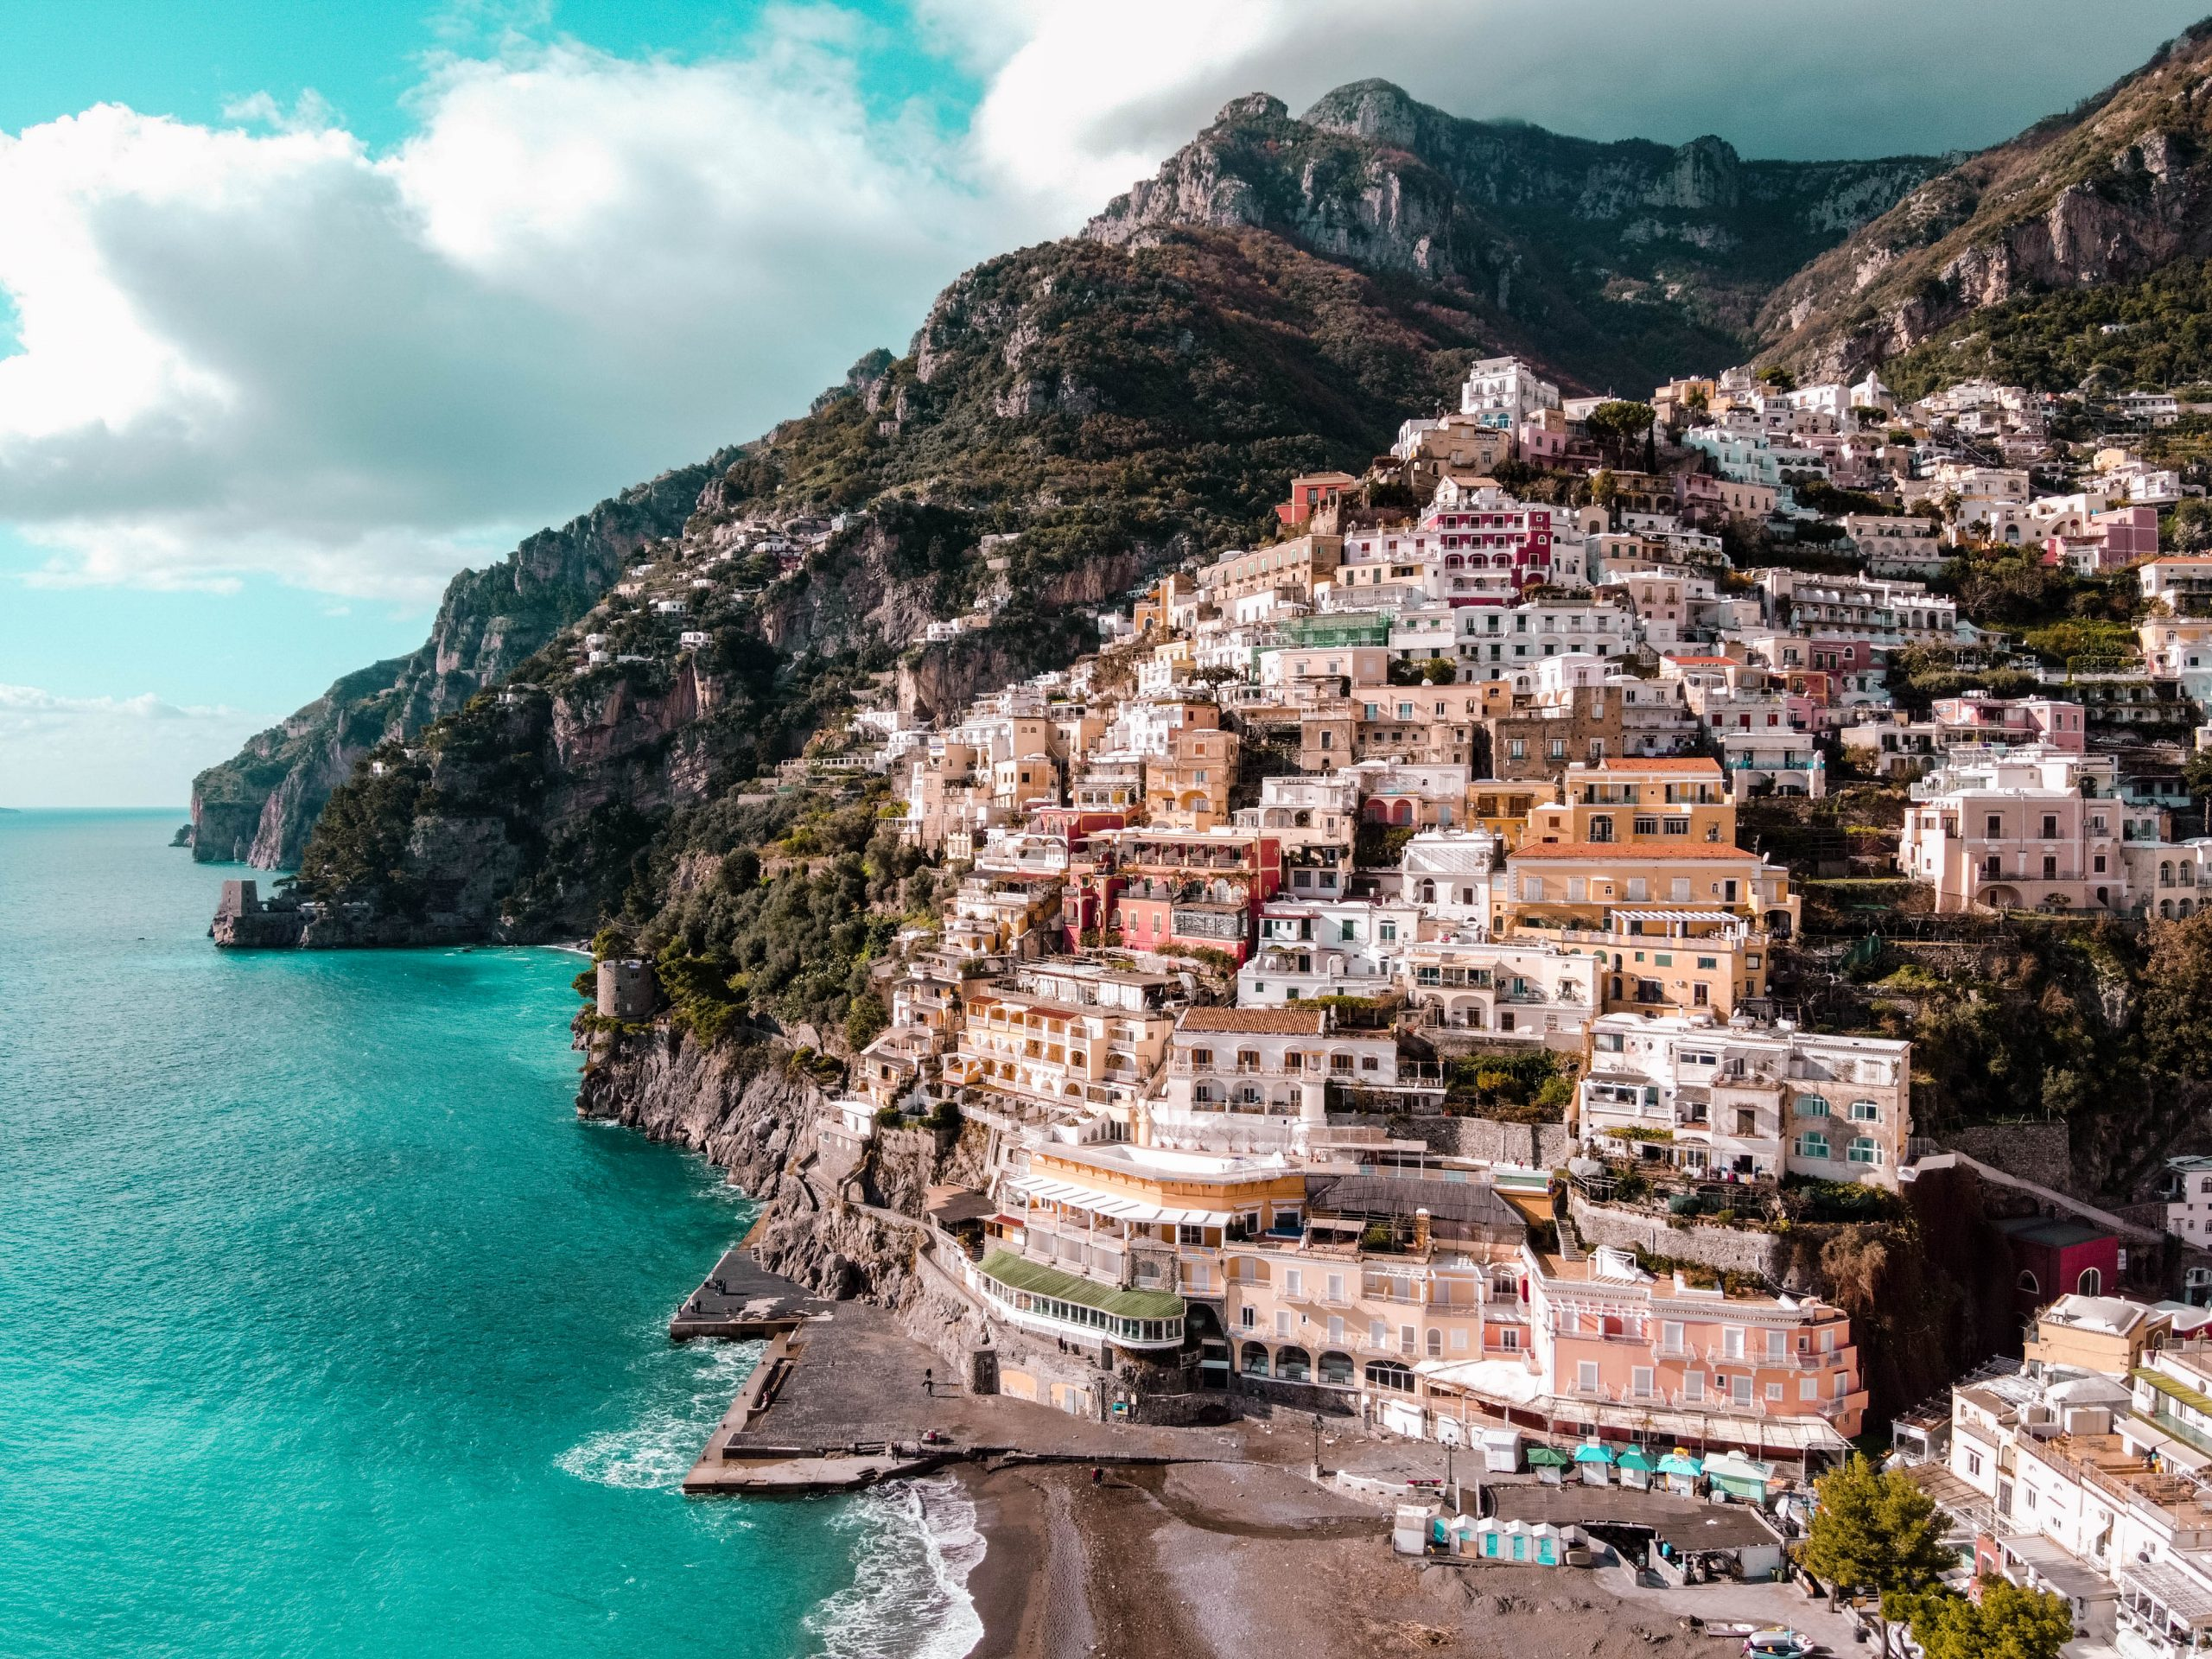 Positano Amalfi Coast Italy Drone Aerial Photgraphy DJI Mavic Mini province of salerno